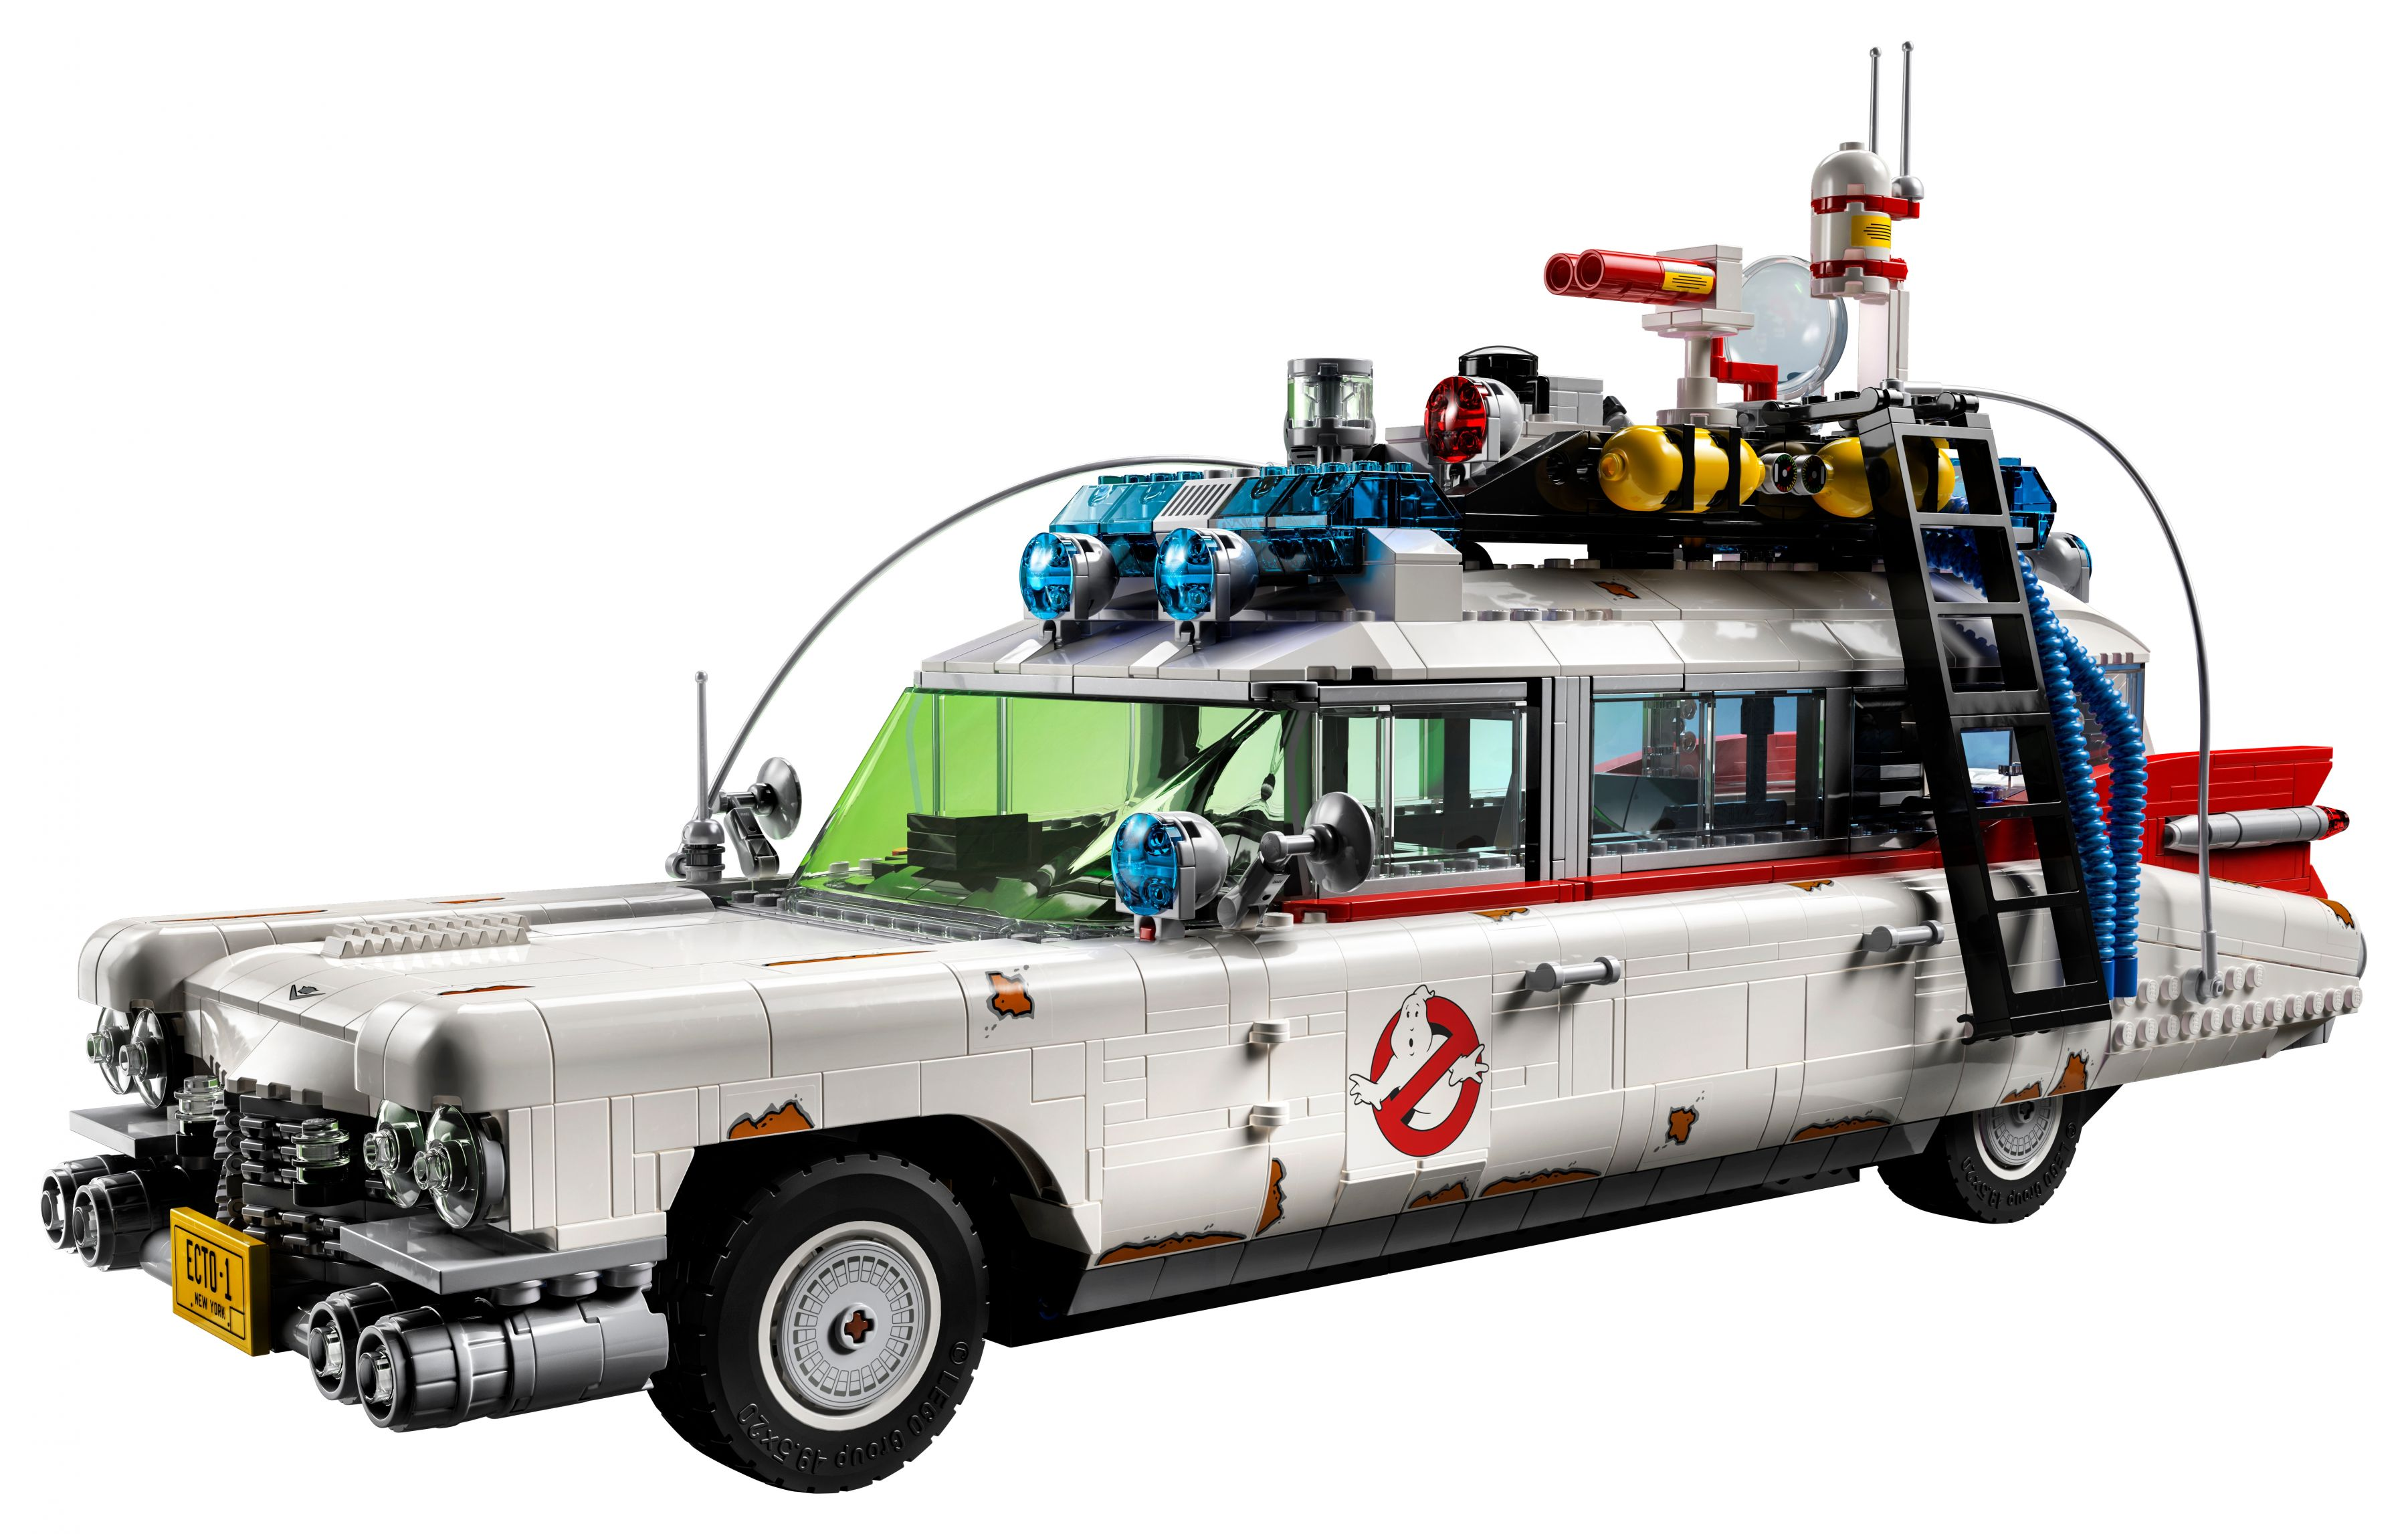 LEGO Advanced Models 10274 Ghostbusters™ ECTO-1 LEGO_10274_alt2.jpg